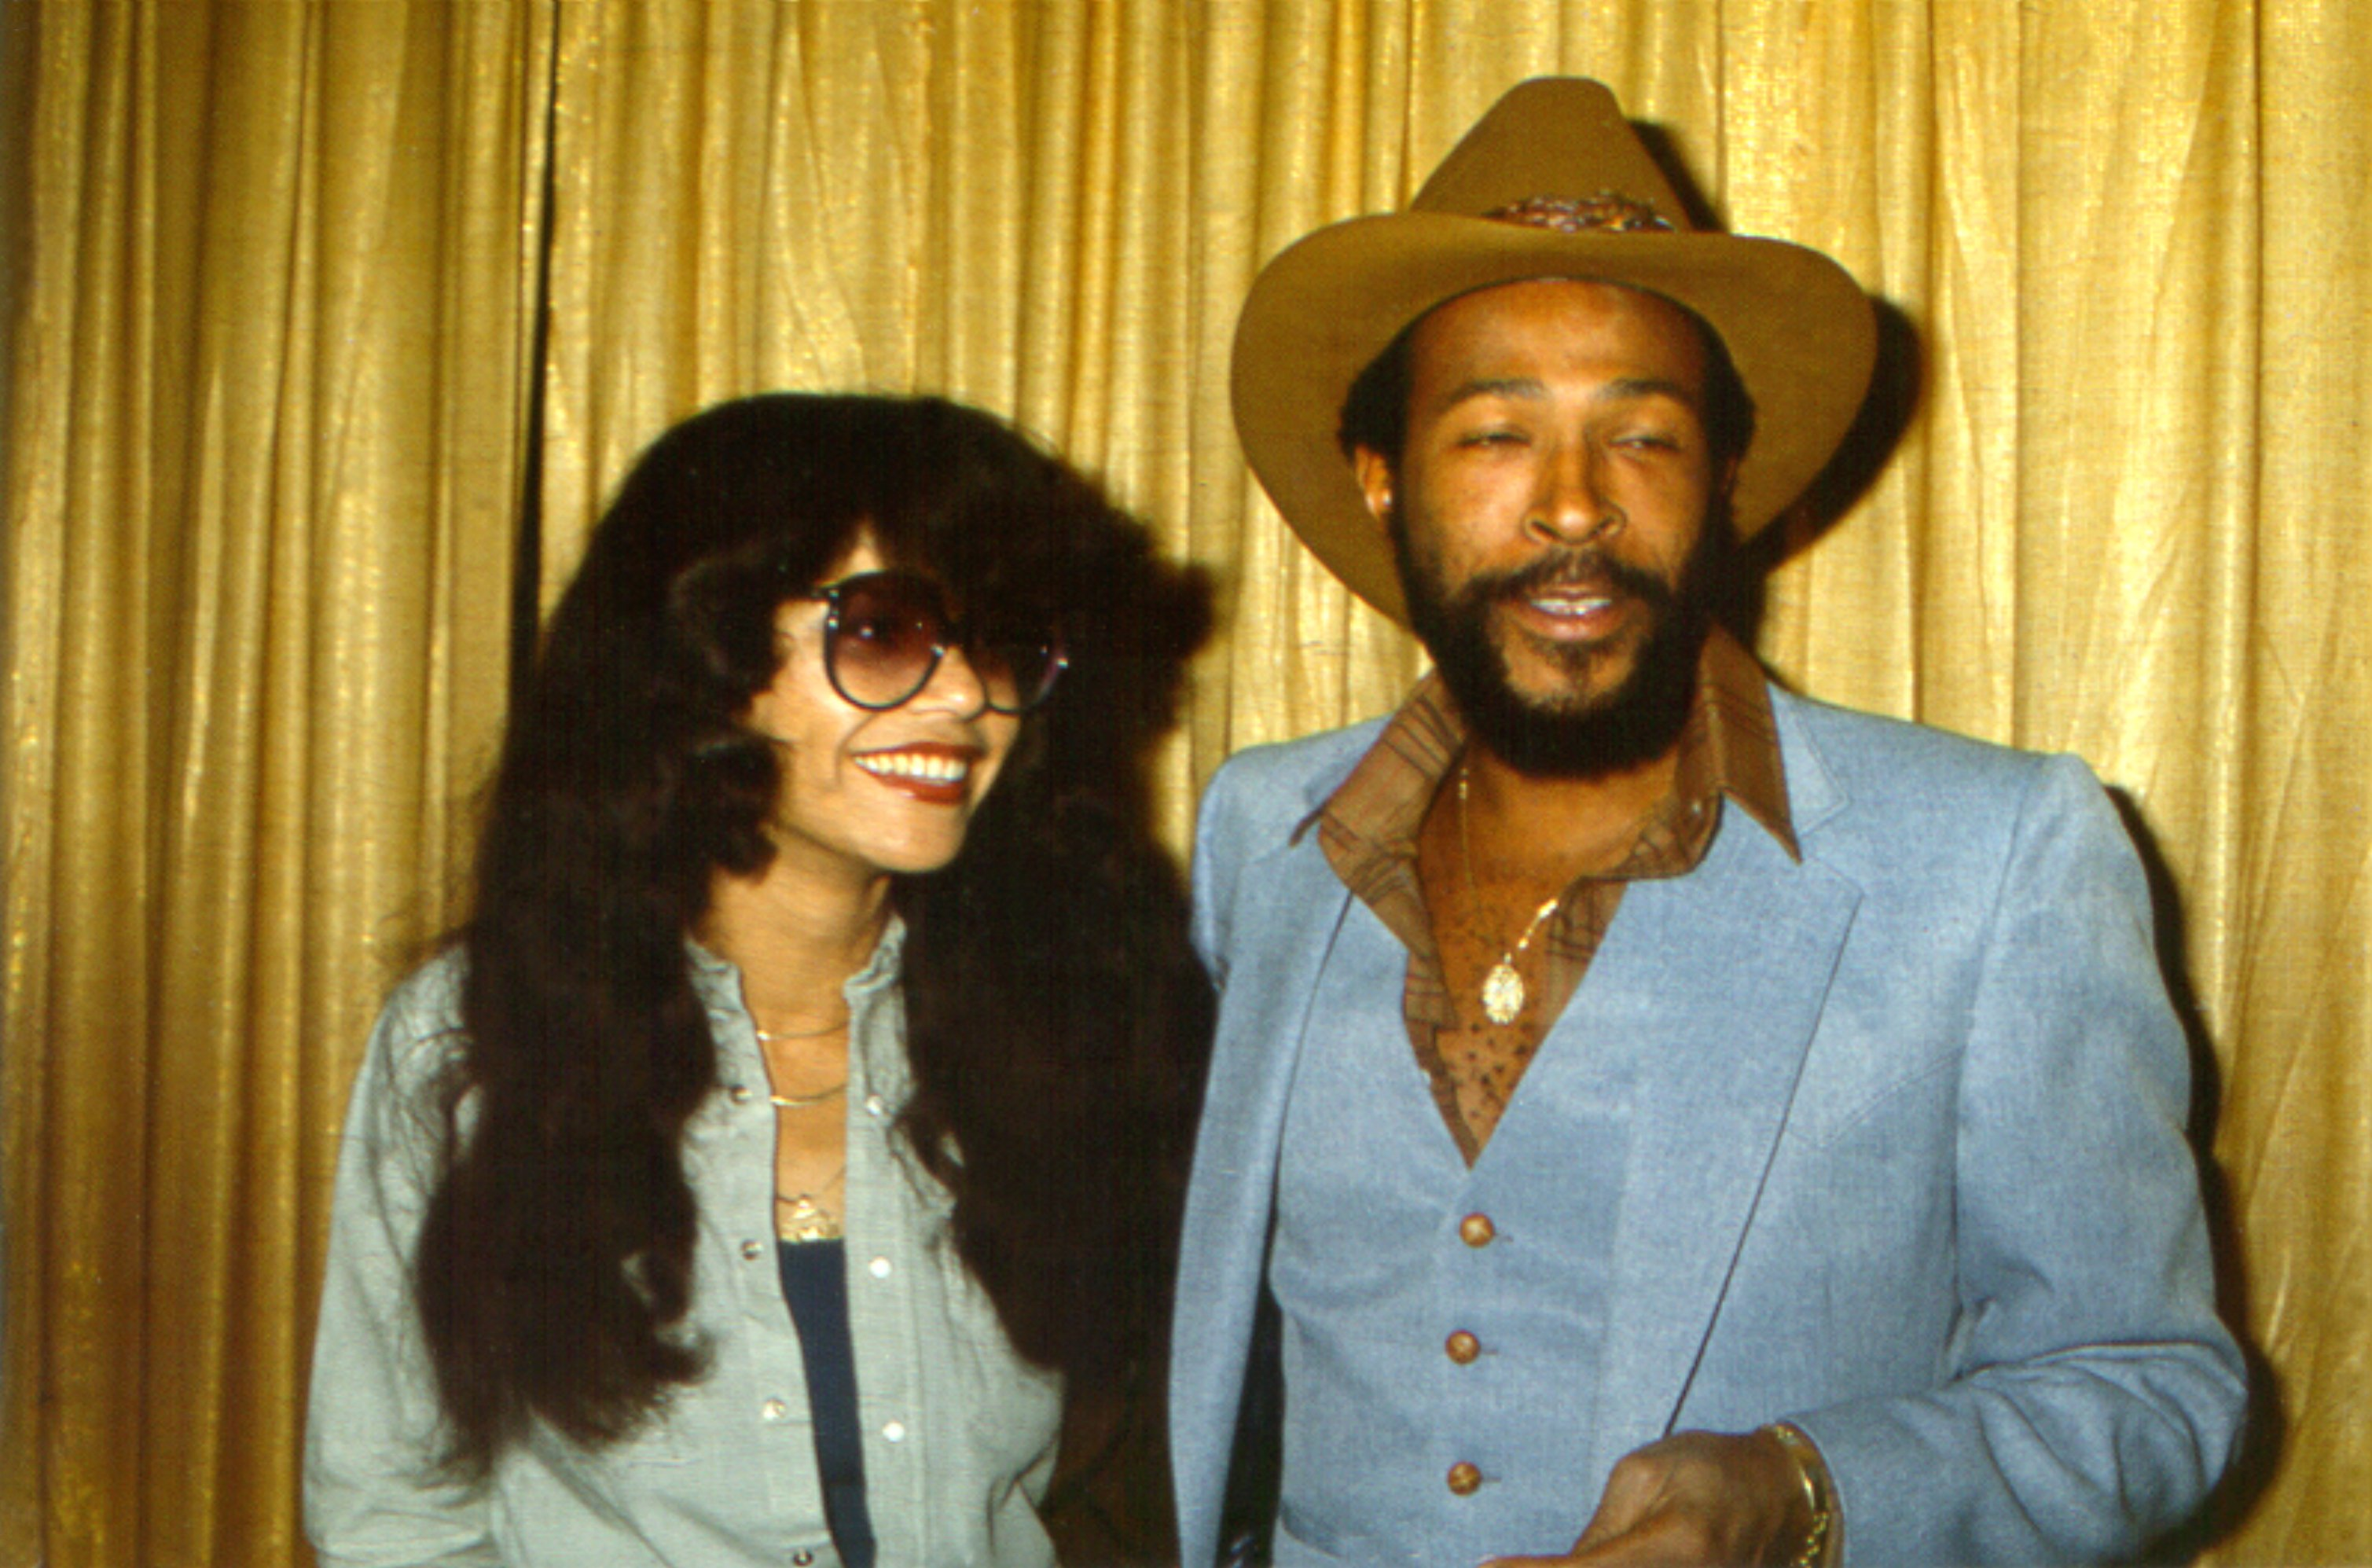 R&B singer Marvin Gaye poses for a portrait at an event with his wife Janice Gaye on October 31, Halloween, 1977 in Los Angeles, California. | Source: Getty Images